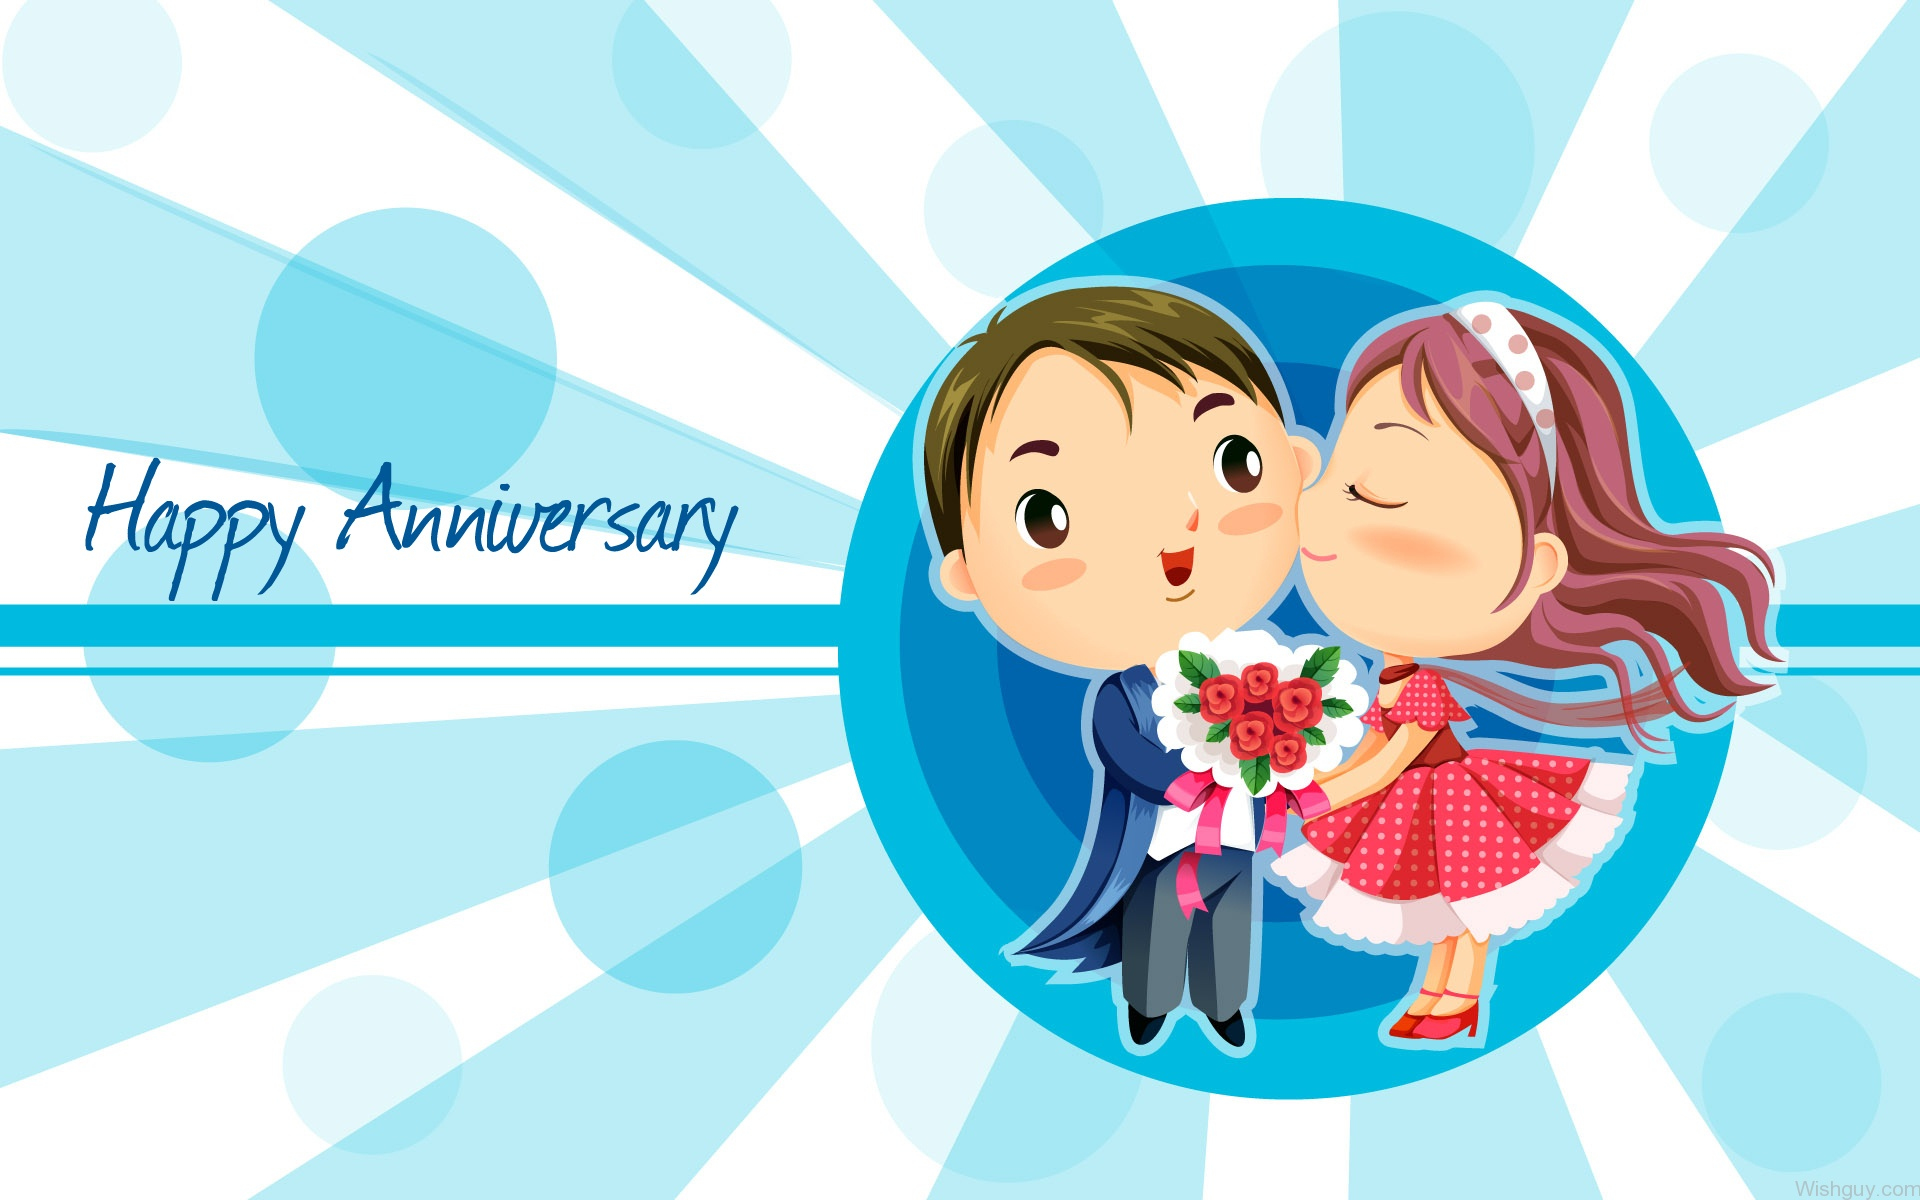 Happy anniversary cute clipart graphic transparent stock Anniversary Wishes Images For Husband | HD Wallpapers, Gifs ... graphic transparent stock